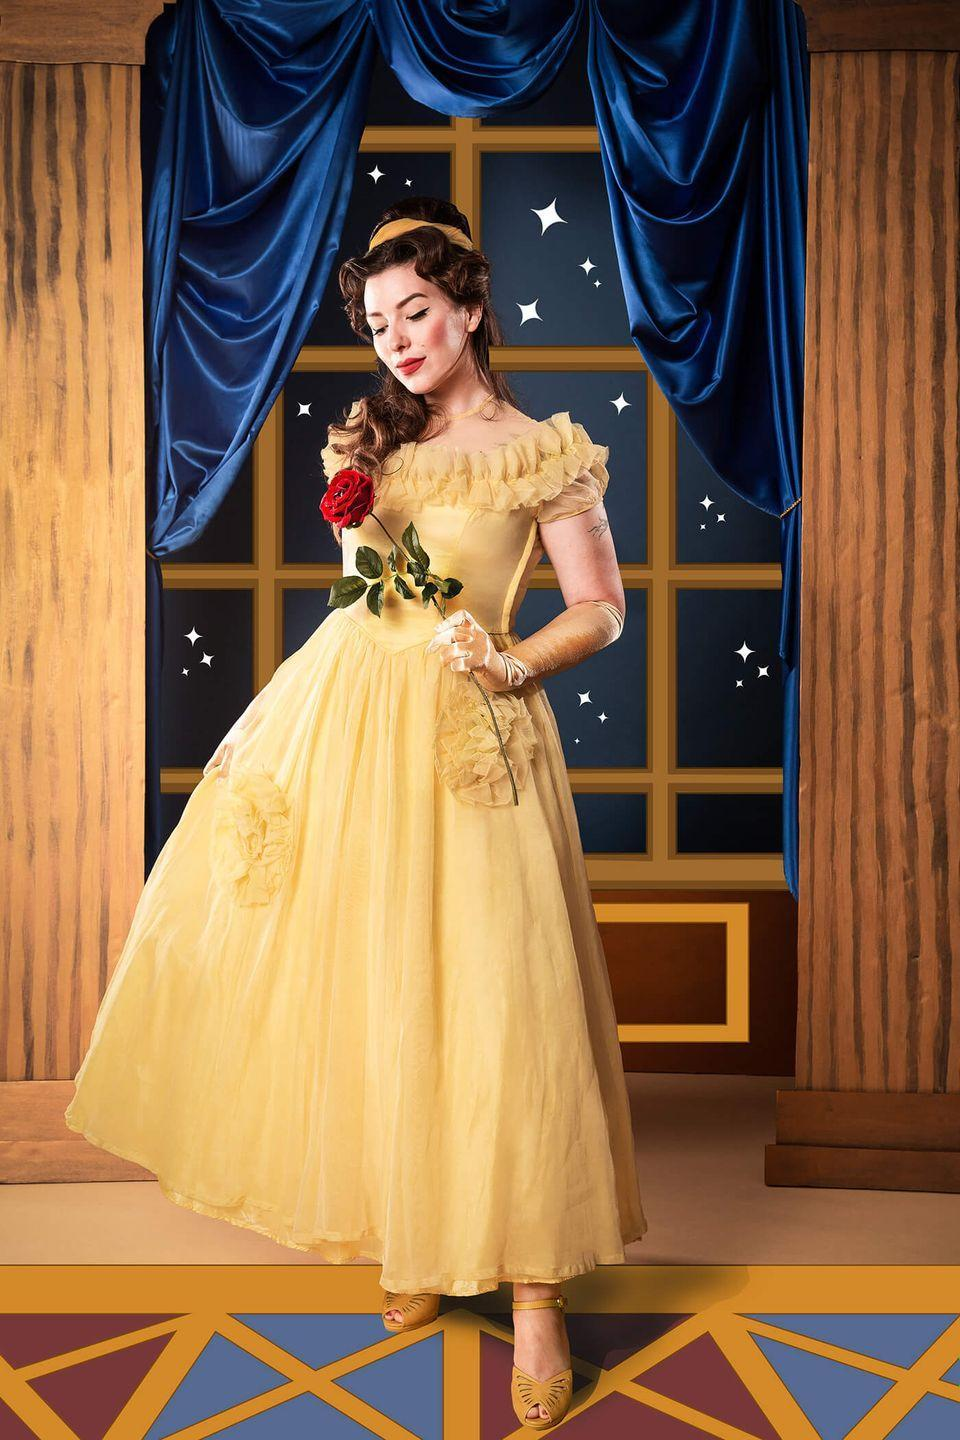 """<p>Go ahead, """"be our guest"""" and dress up as your favorite brown-haired Disney princess for Halloween — a.k.a. Belle from <em>Beauty and the Beast</em>. </p><p><em><a href=""""https://keikolynn.com/2018/10/disney-halloween-costume-belle-from-beauty-and-the-beast/"""" rel=""""nofollow noopener"""" target=""""_blank"""" data-ylk=""""slk:Get the tutorial at Keiko Lynn »"""" class=""""link rapid-noclick-resp"""">Get the tutorial at Keiko Lynn »</a> </em></p><p><strong>RELATED: </strong><a href=""""https://www.goodhousekeeping.com/holidays/halloween-ideas/g4771/disney-halloween-costumes/"""" rel=""""nofollow noopener"""" target=""""_blank"""" data-ylk=""""slk:40 Best Disney Halloween Costumes the Entire Family Will Love"""" class=""""link rapid-noclick-resp"""">40 Best Disney Halloween Costumes the Entire Family Will Love</a></p>"""